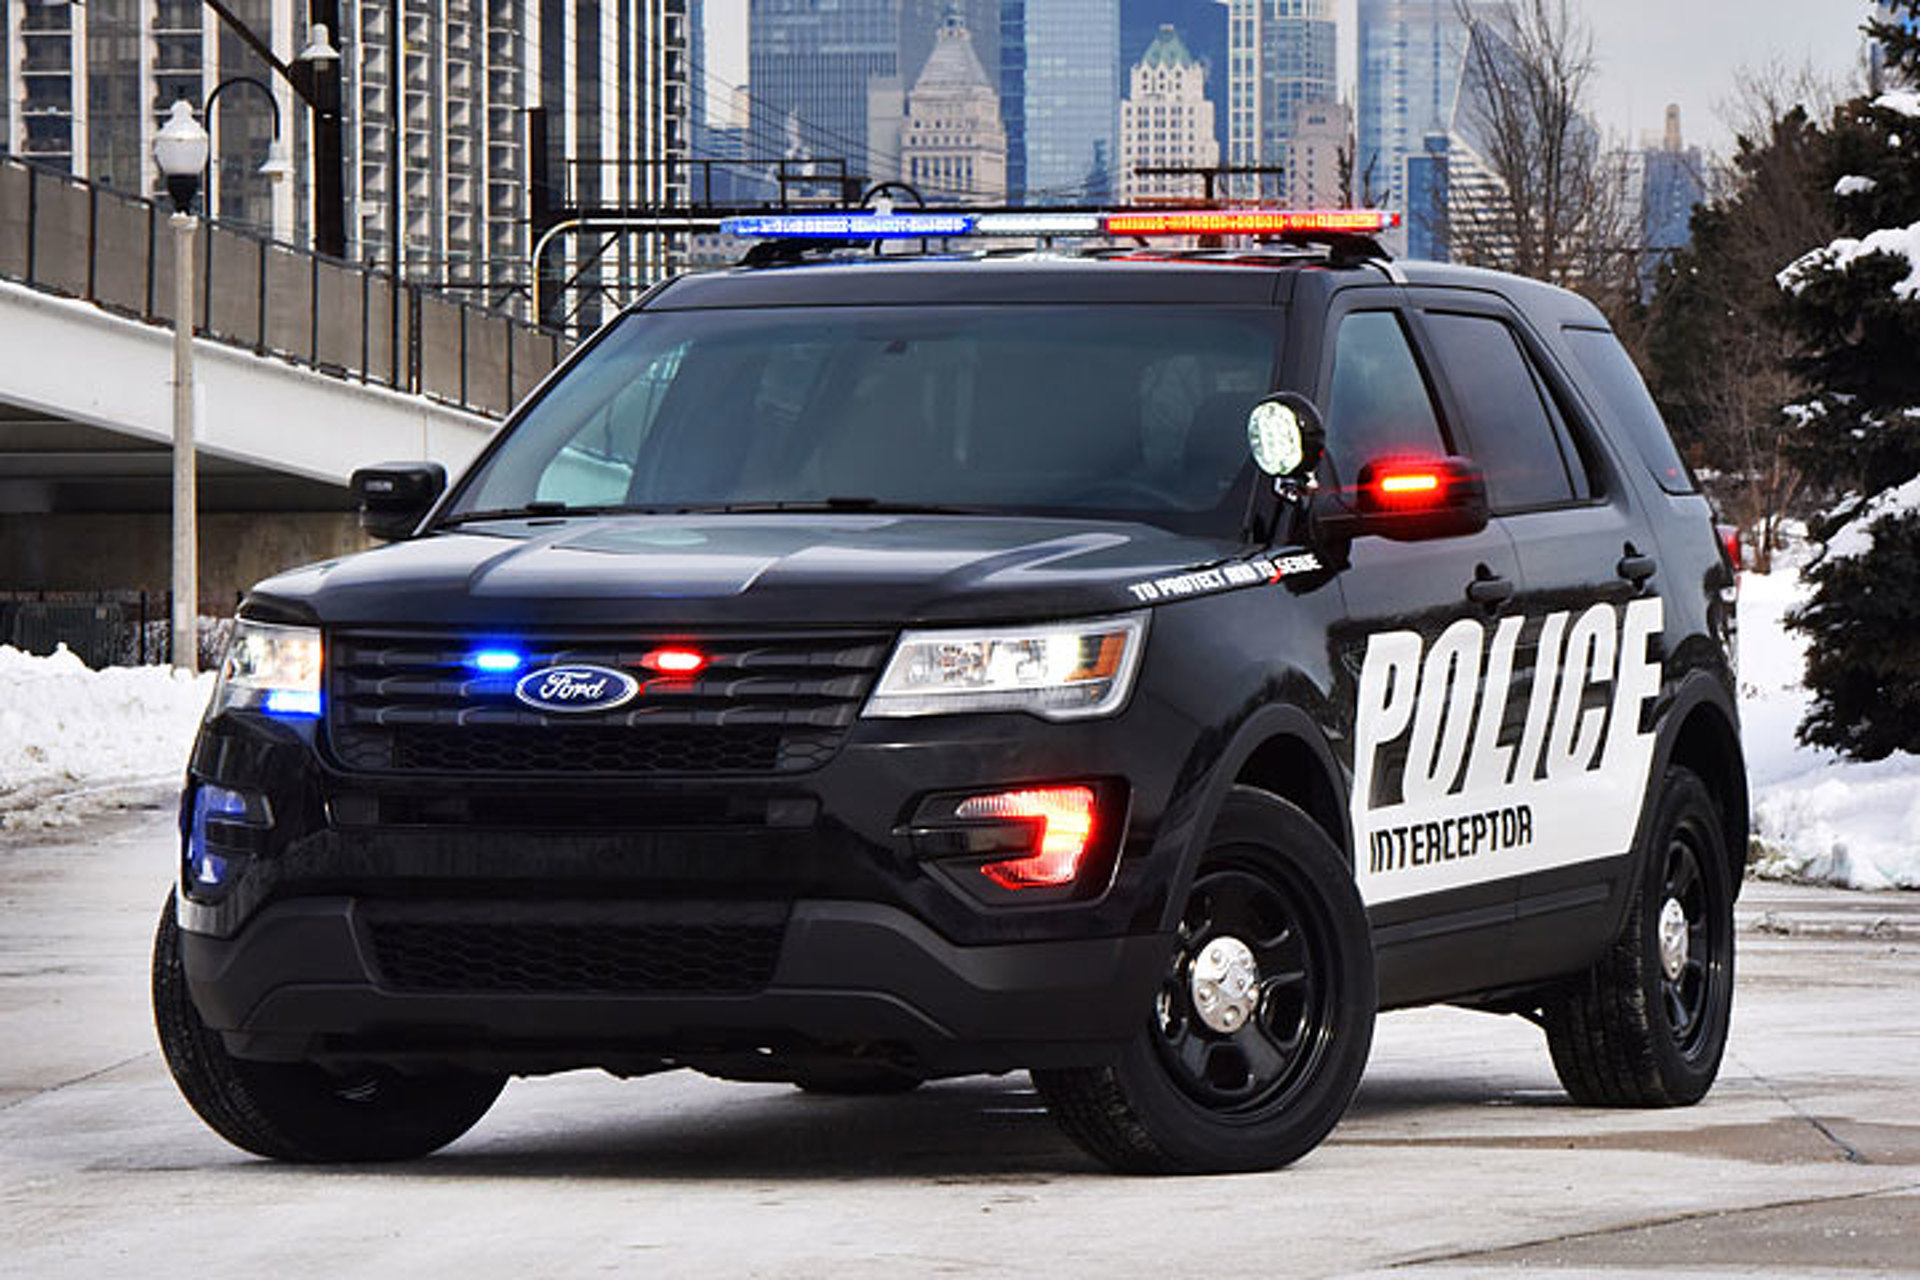 The 2017 Ford Police Interceptor Utility is Going Stealth